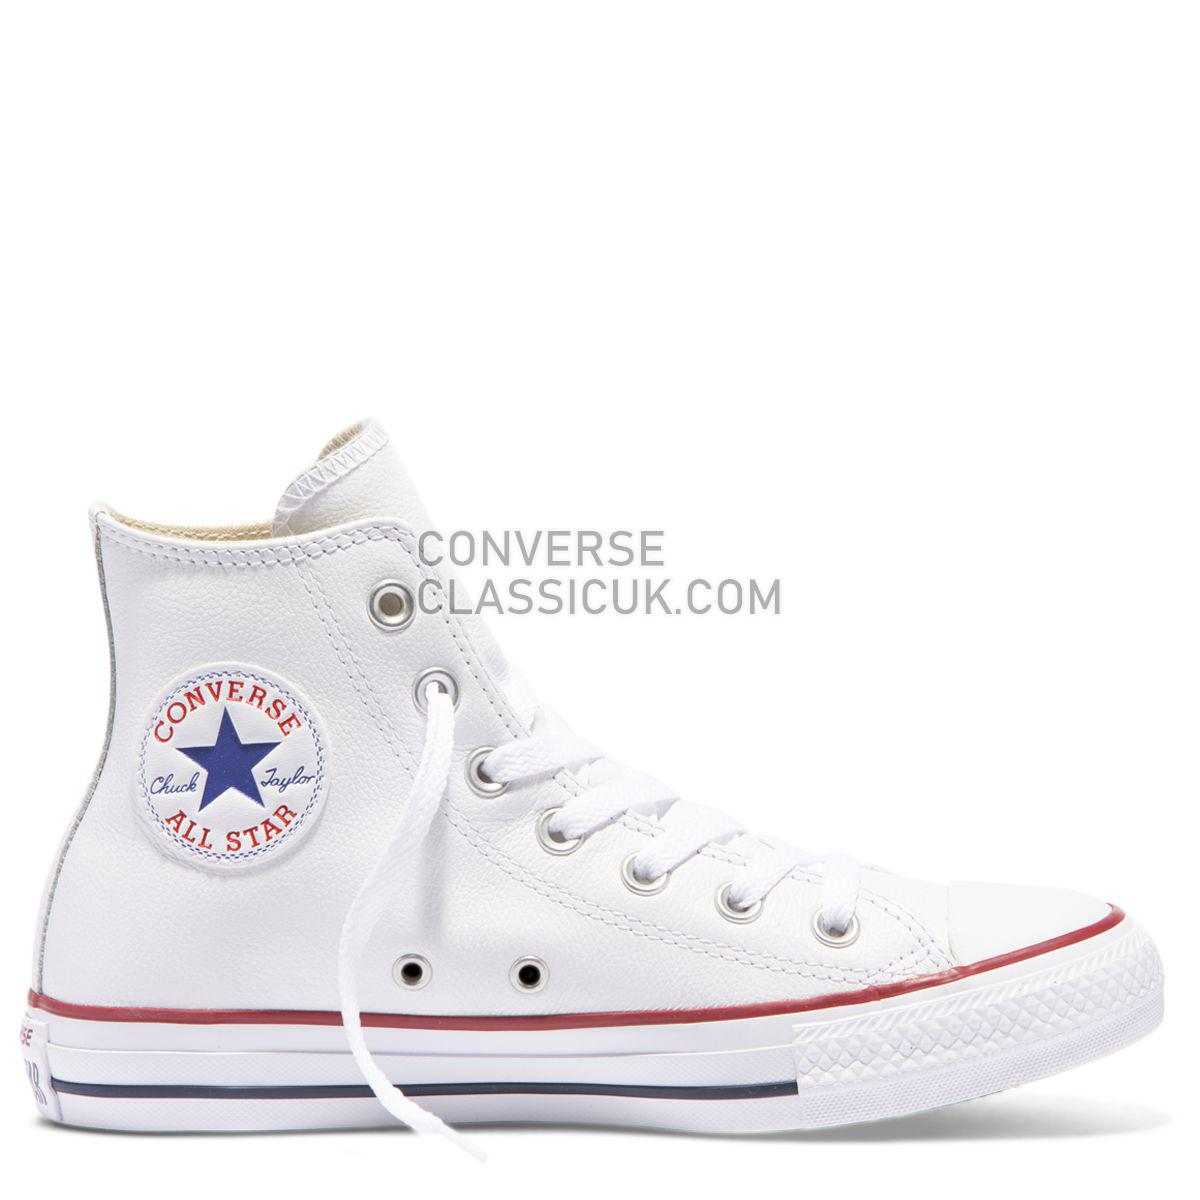 Converse Chuck Taylor All Star Leather High Top White Mens Womens Unisex 132169 White Shoes